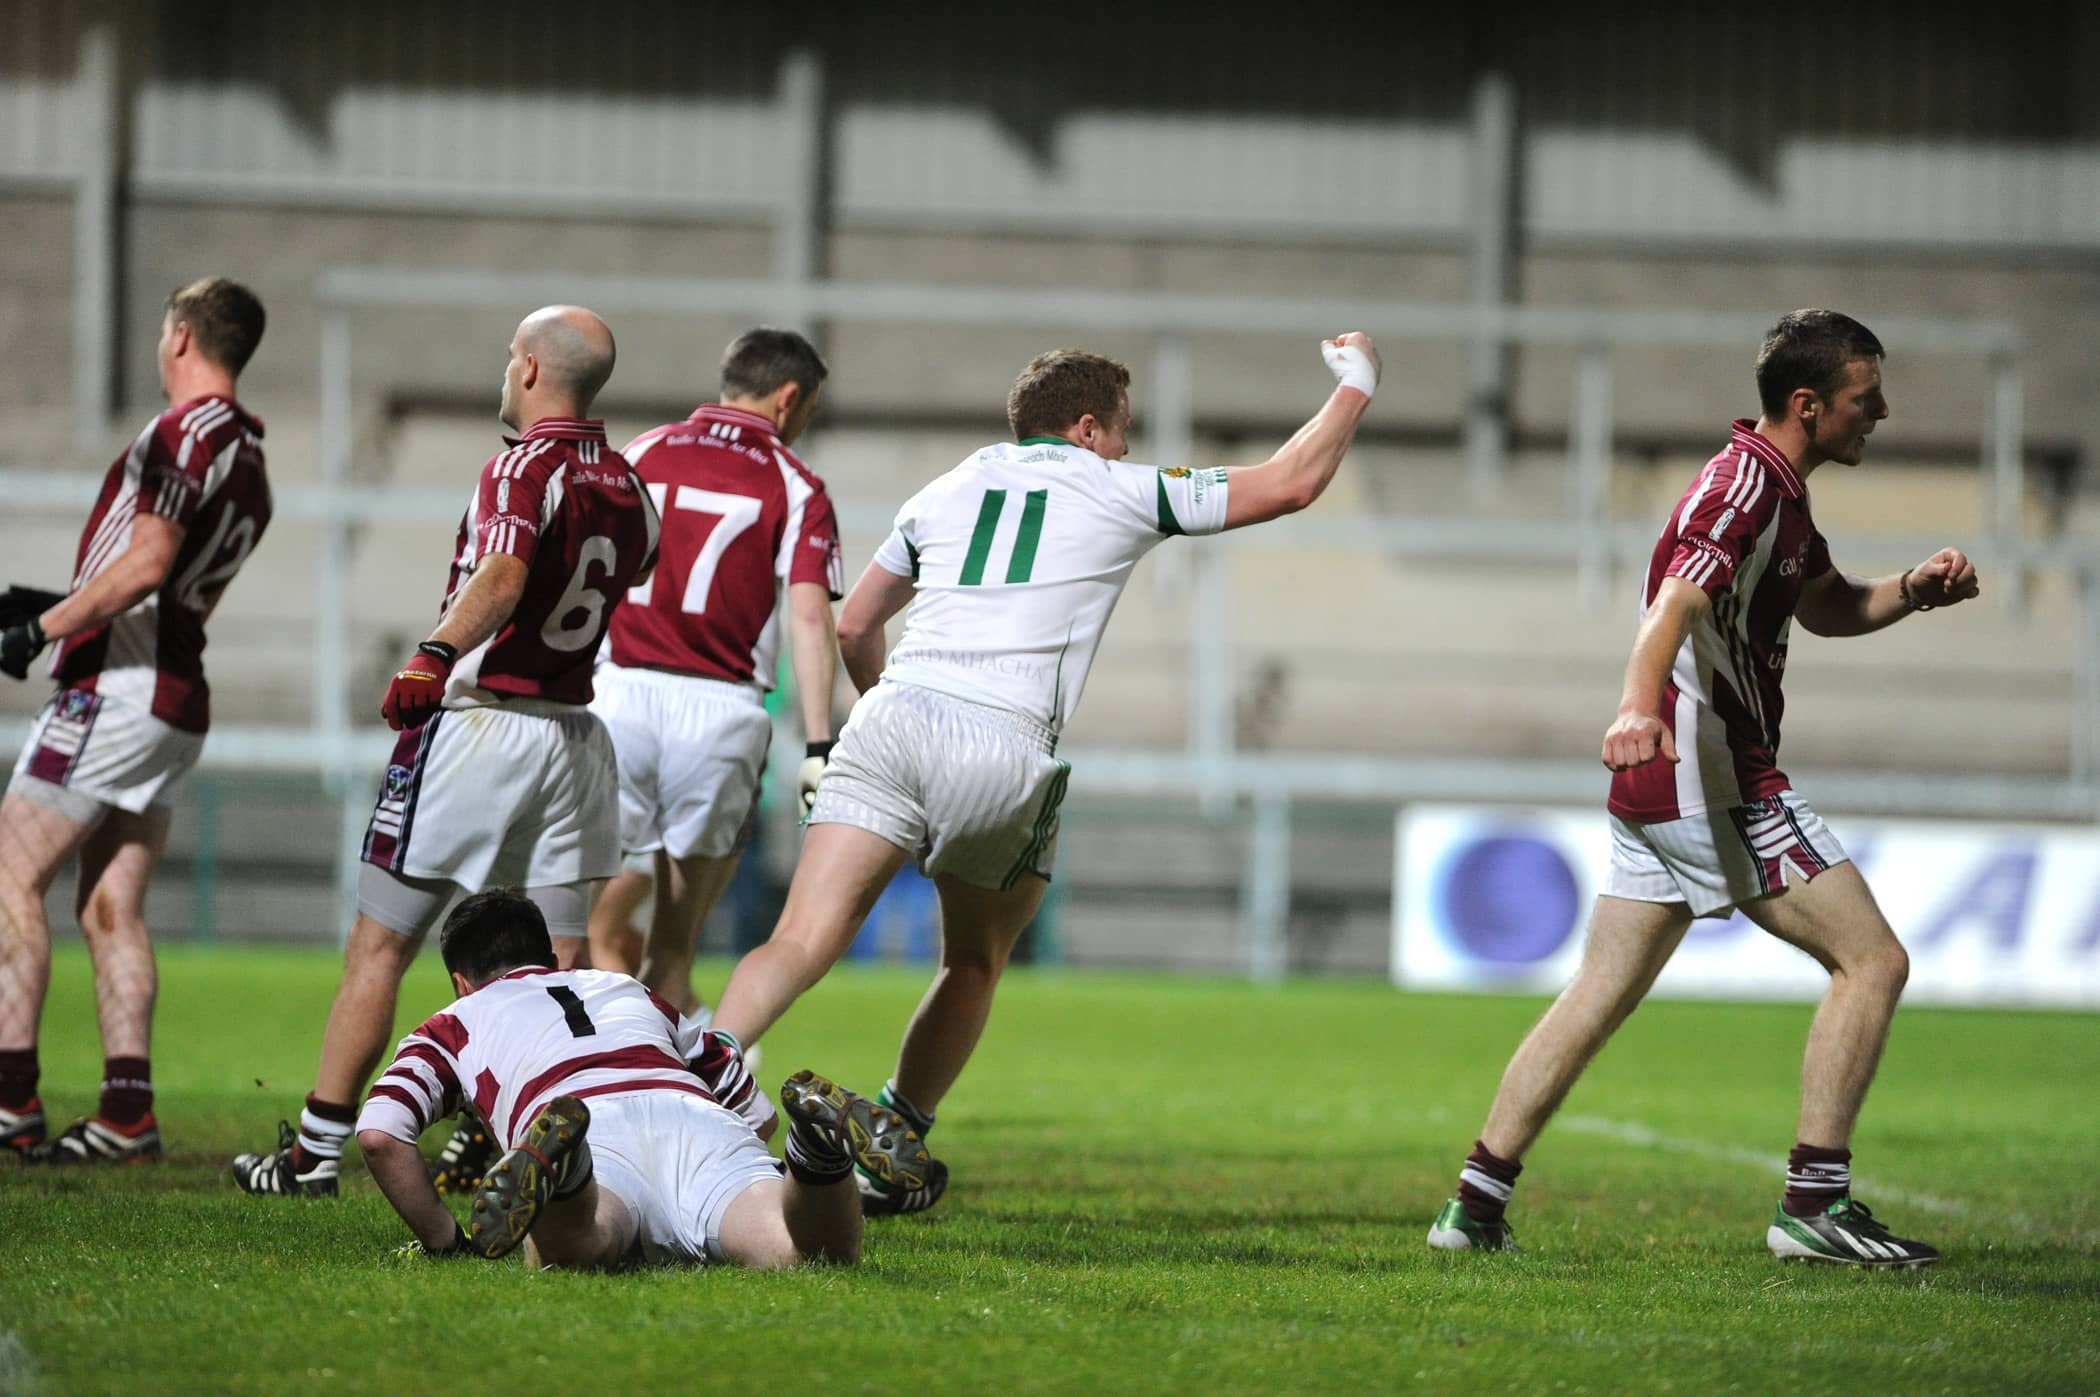 Jason O'Neill scores the all-important goal for Granemore in last night's Armagh Senior Football Championship against Ballymacnab. Photo: John Merry